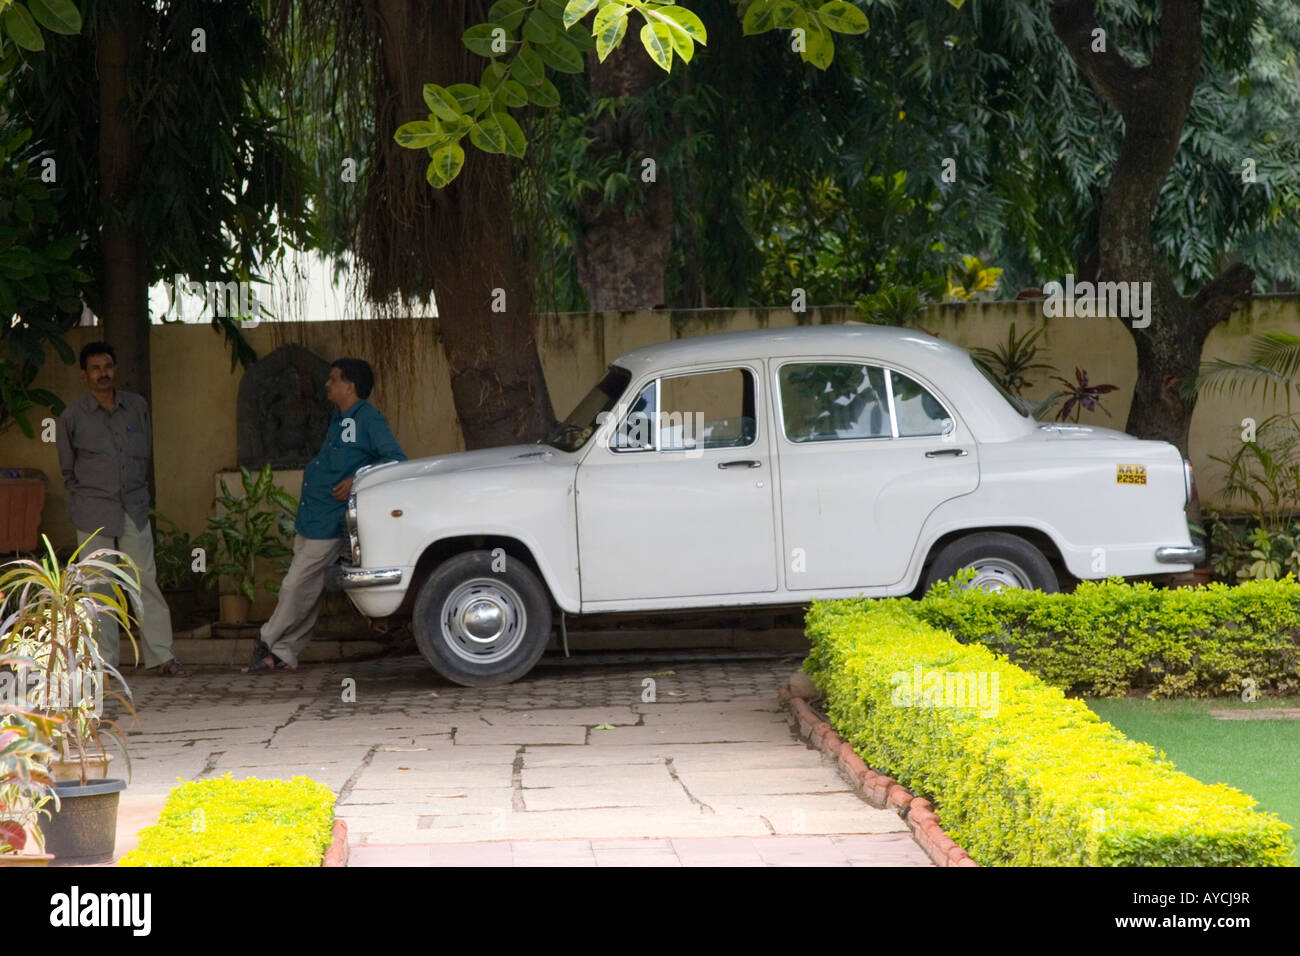 Hindustan Ambassador car parked in the grounds of the Tipu Sultan s summer palace - Stock Image